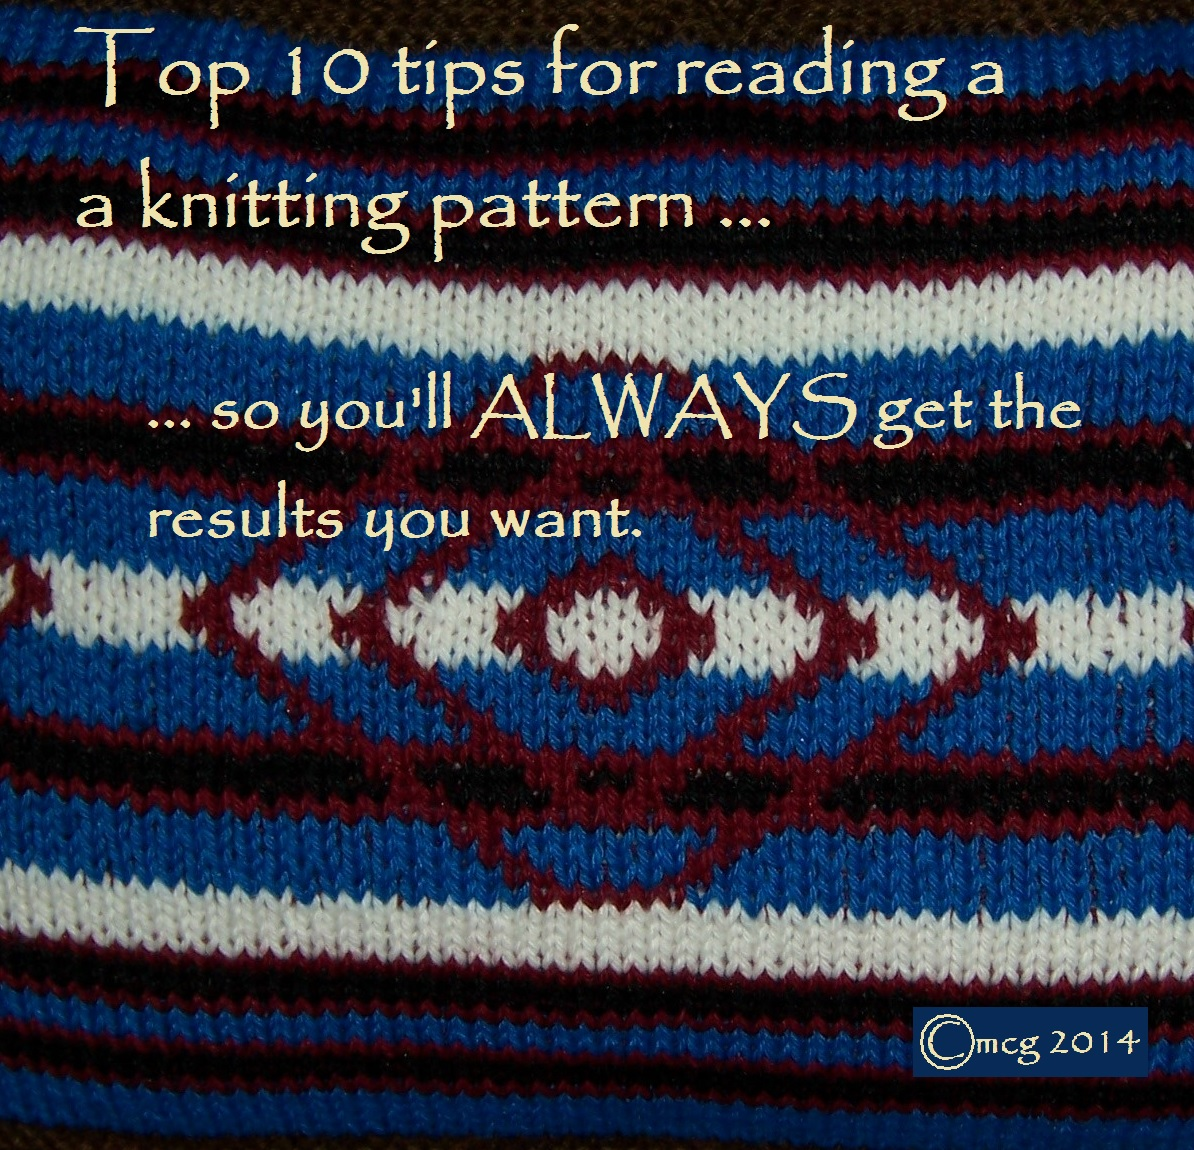 How To Read A Knit Pattern : Tips Tuesday: How to read a knitting pattern ? so you ll always get the resul...